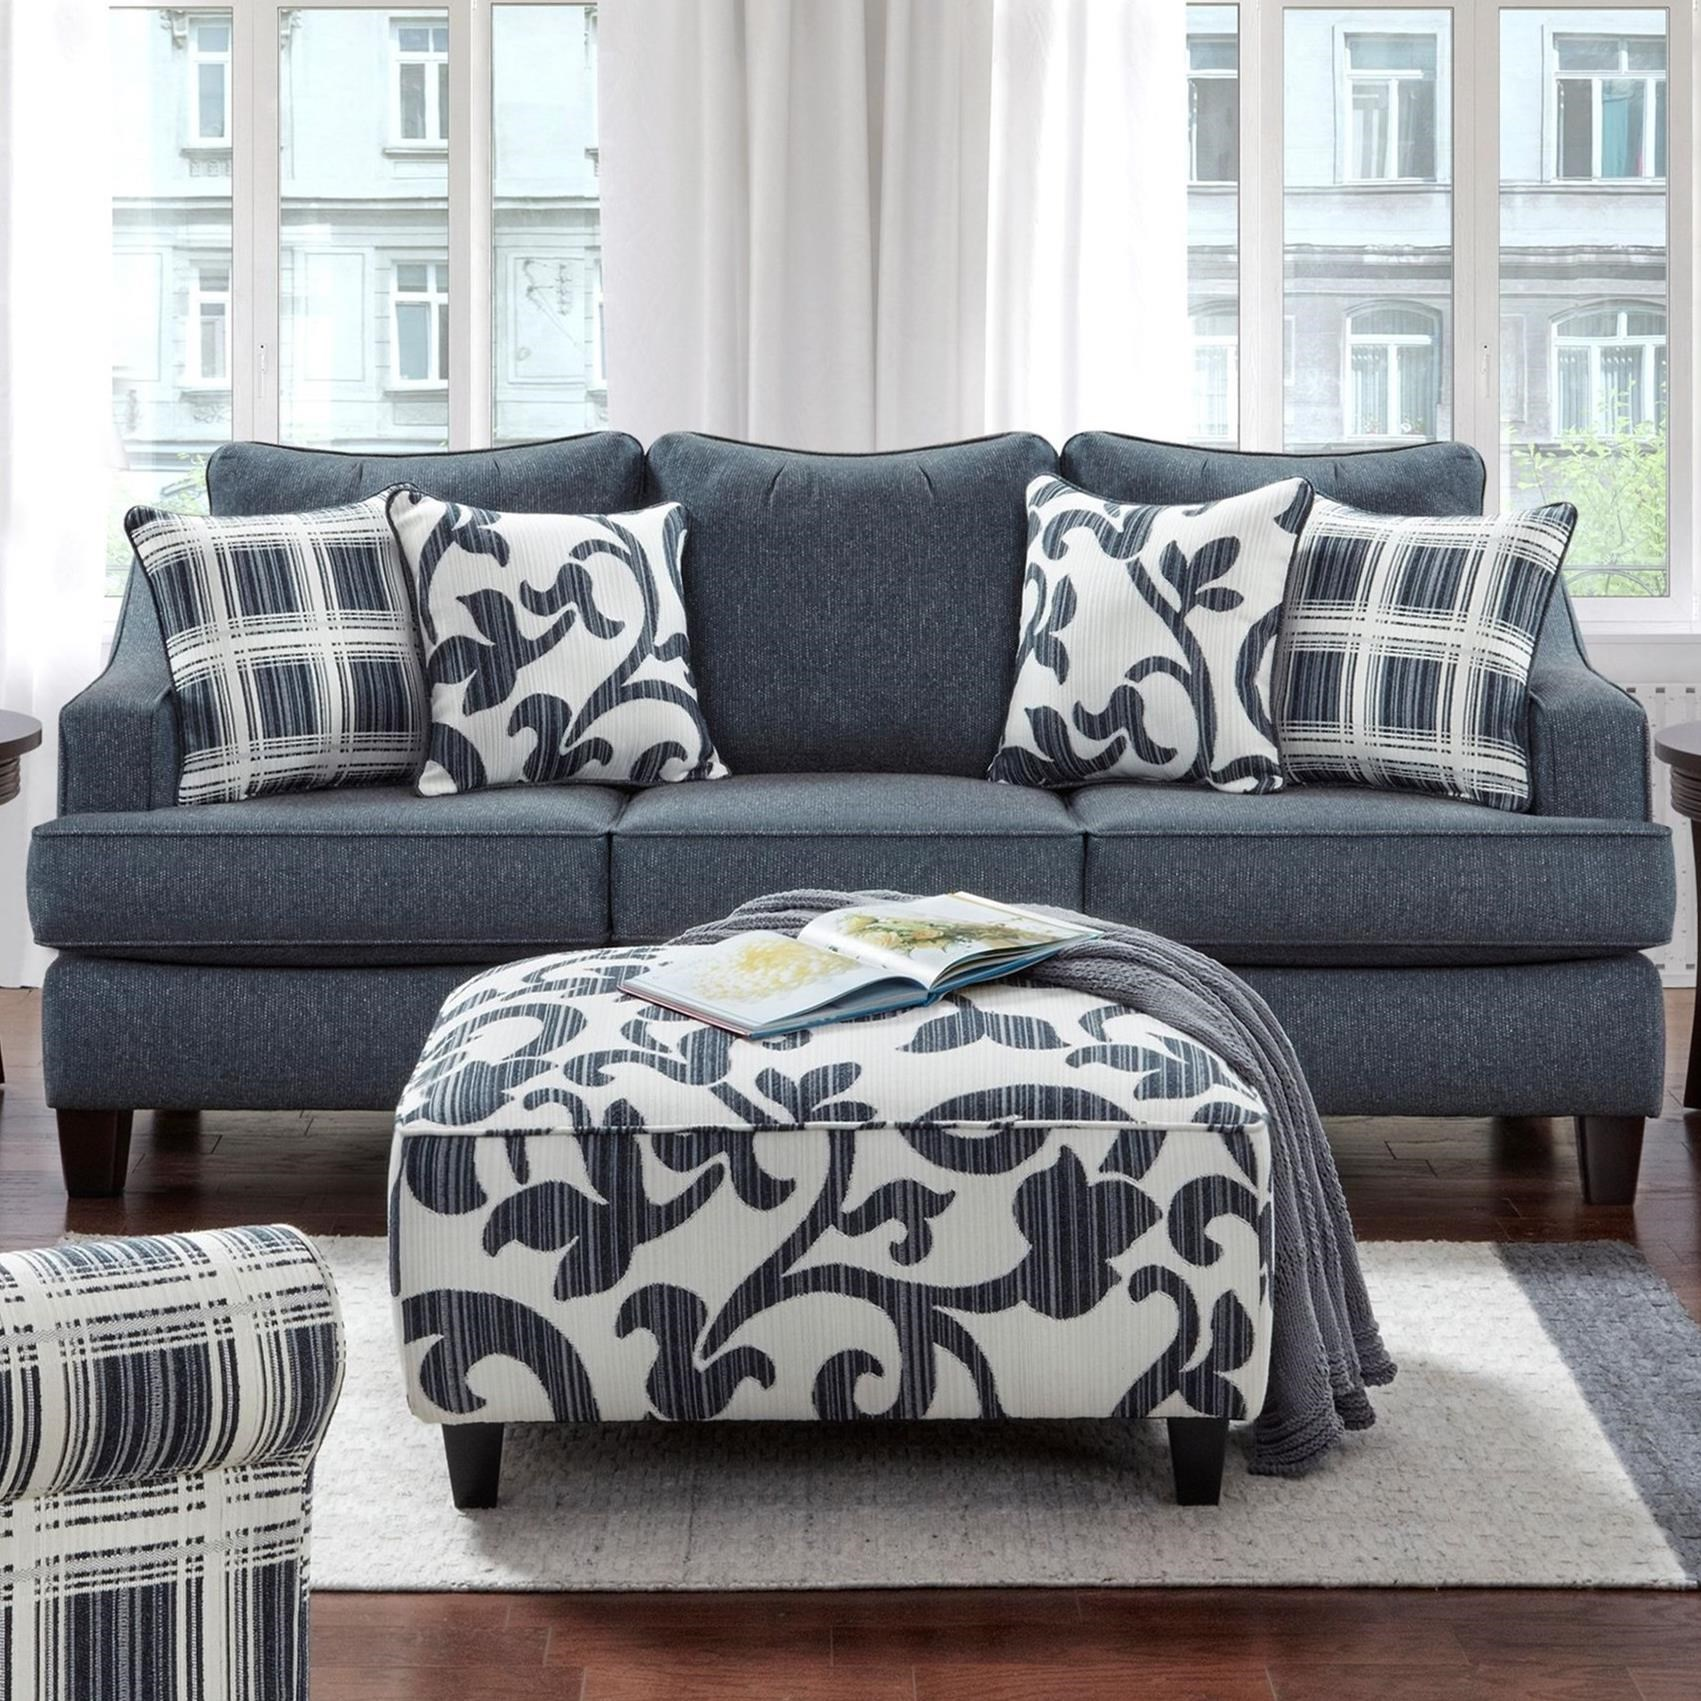 2330 Sleeper Sofa by Powell's V.I.P. at Powell's Furniture and Mattress